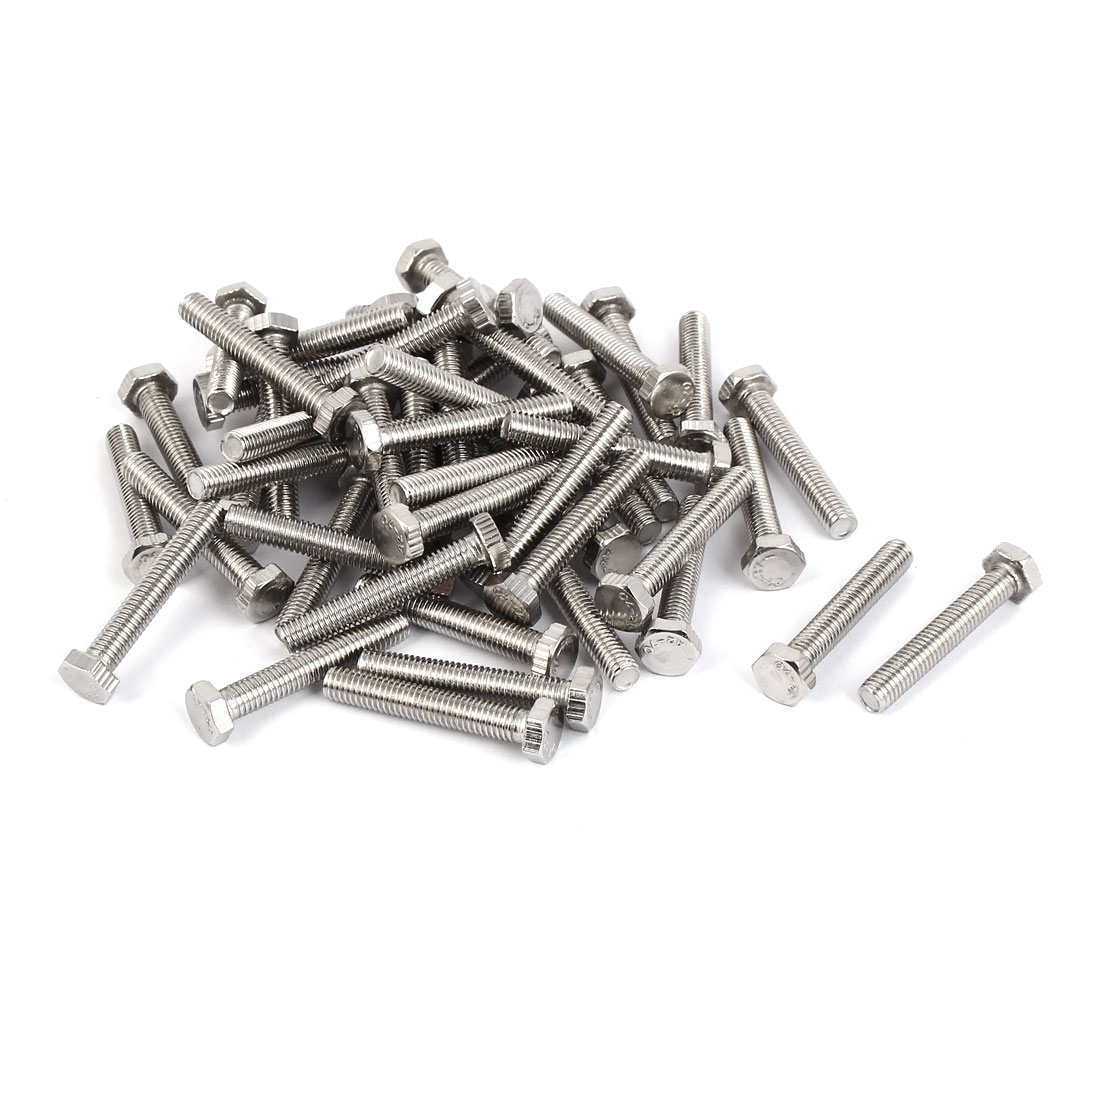 M5 x 30mm Stainless Steel Fully Thread Hex Hexagon Screws Bolts DIN 933 50PCS